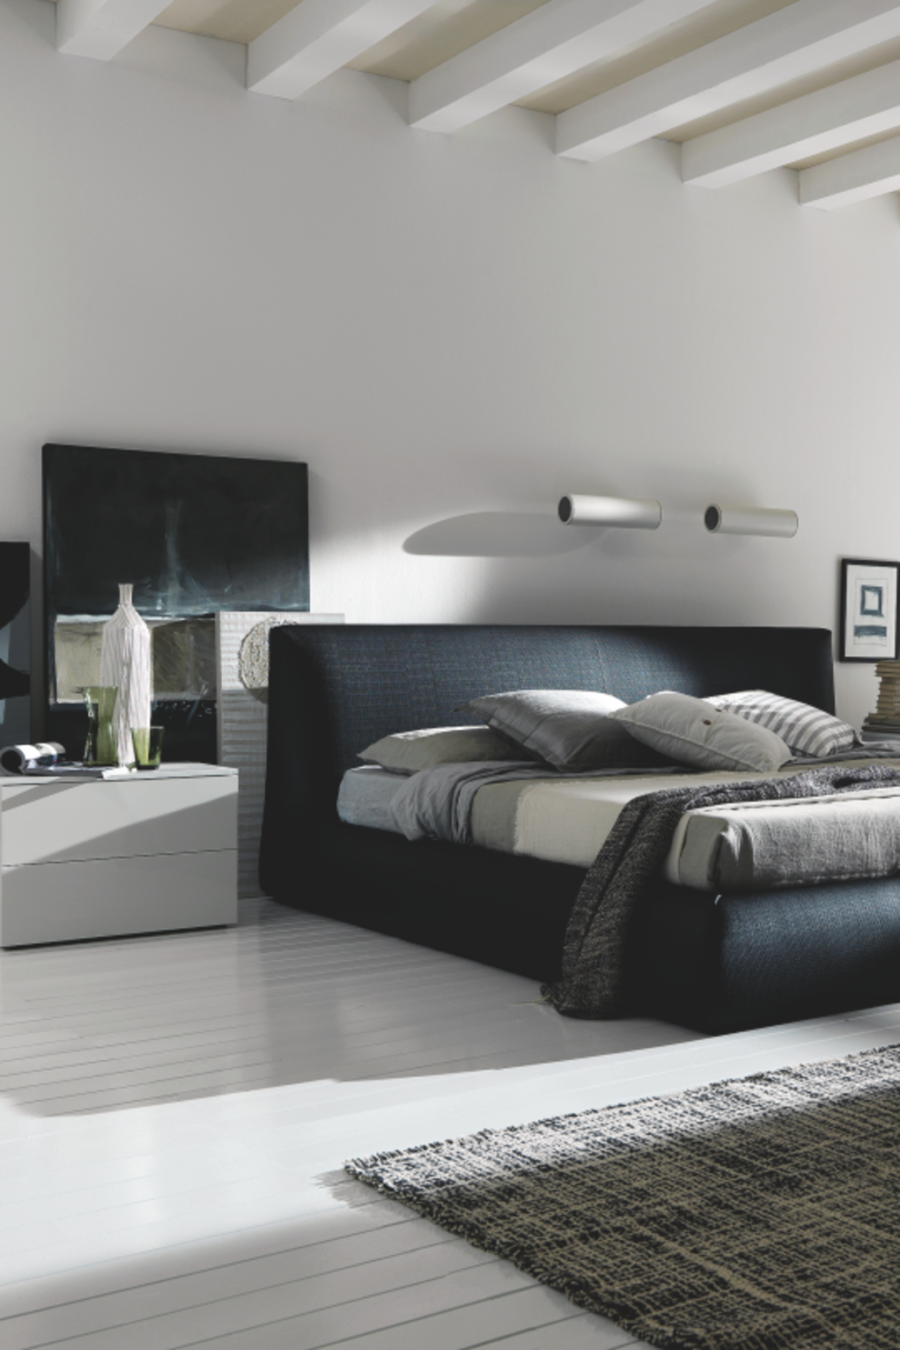 Bringing contrast into your room with this black design provides a bold feature that is a sure way to get a good first impression.